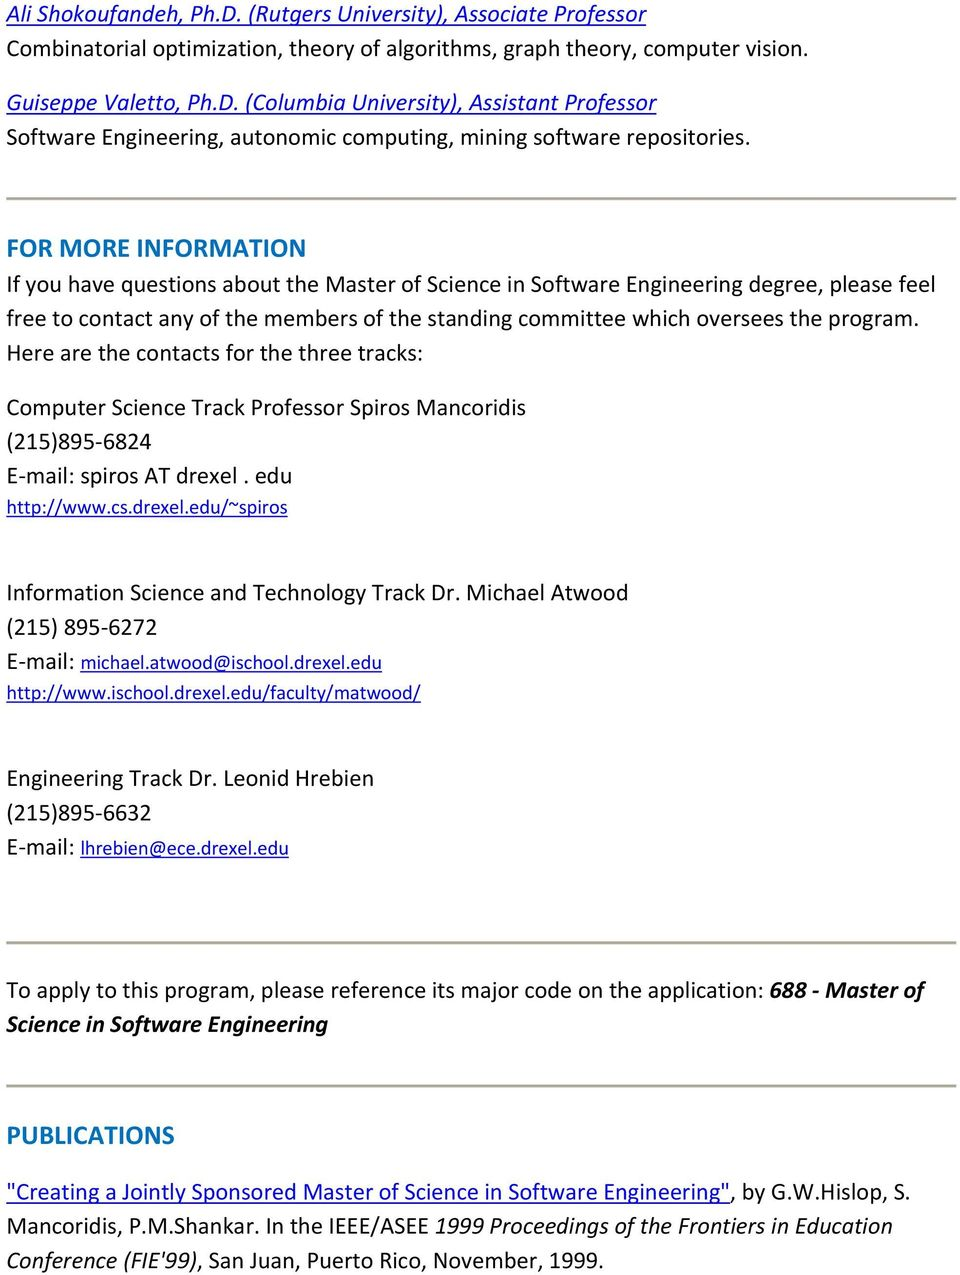 Master of Science in Software Engineering - PDF